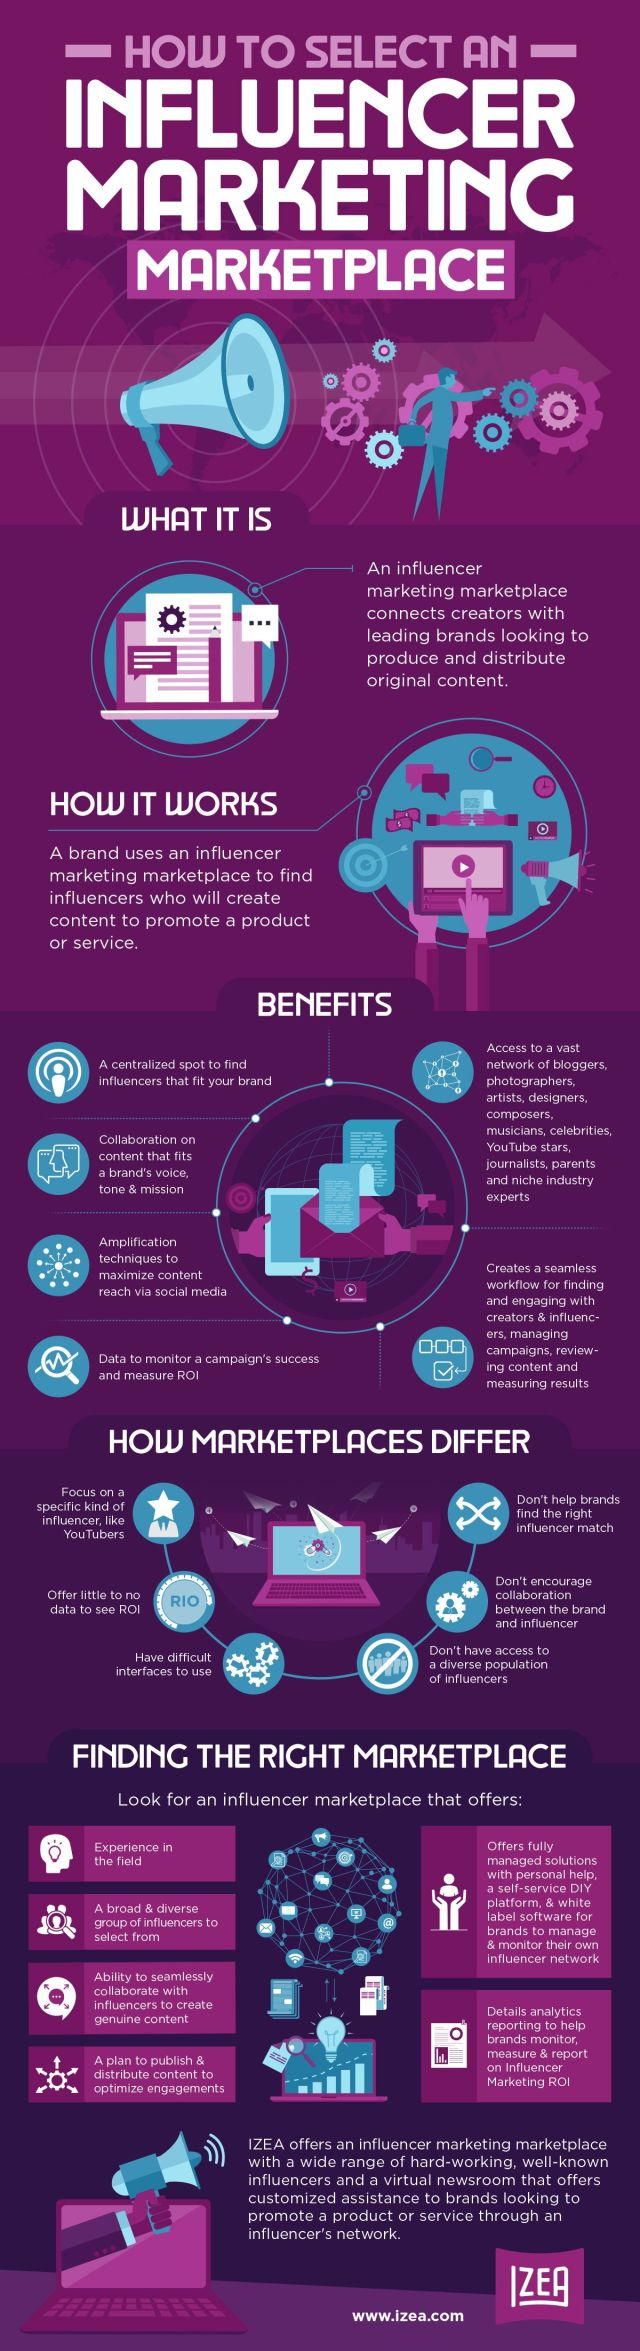 How to Select an Influencer Marketing Marketplace [Infographic]